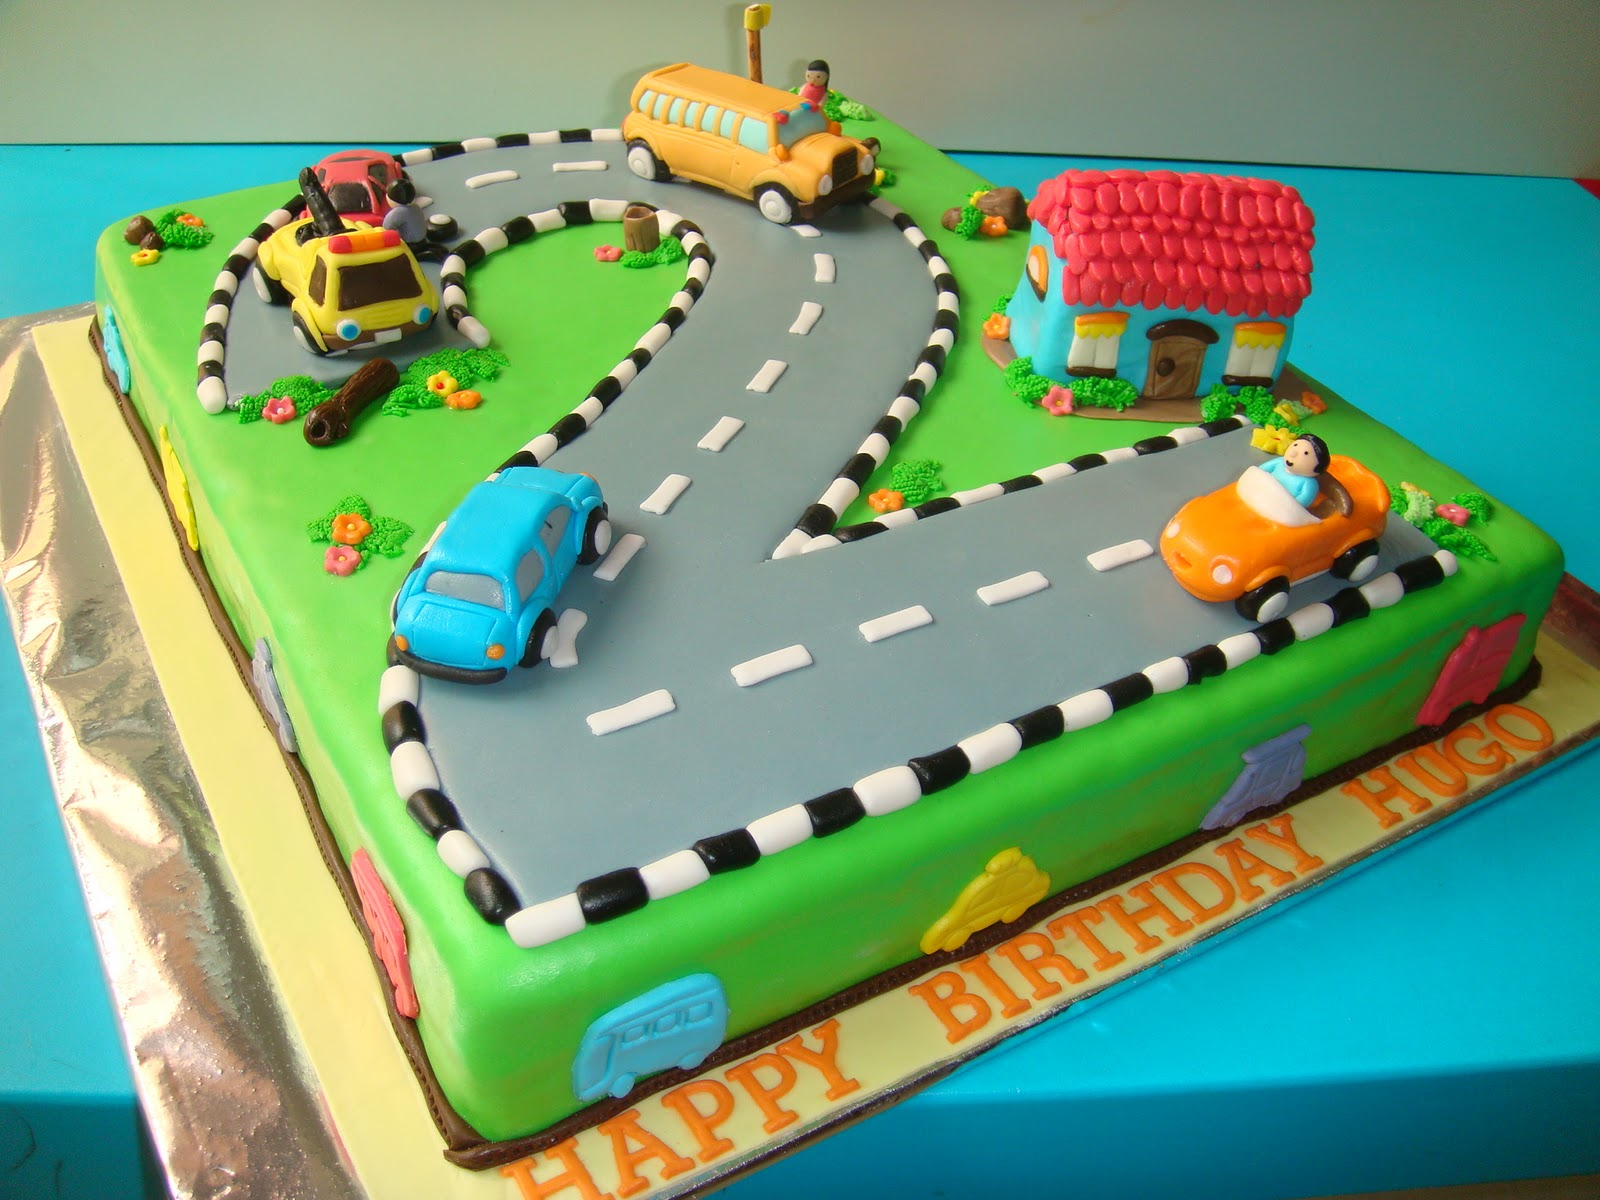 Grand Prix Birthday Cake